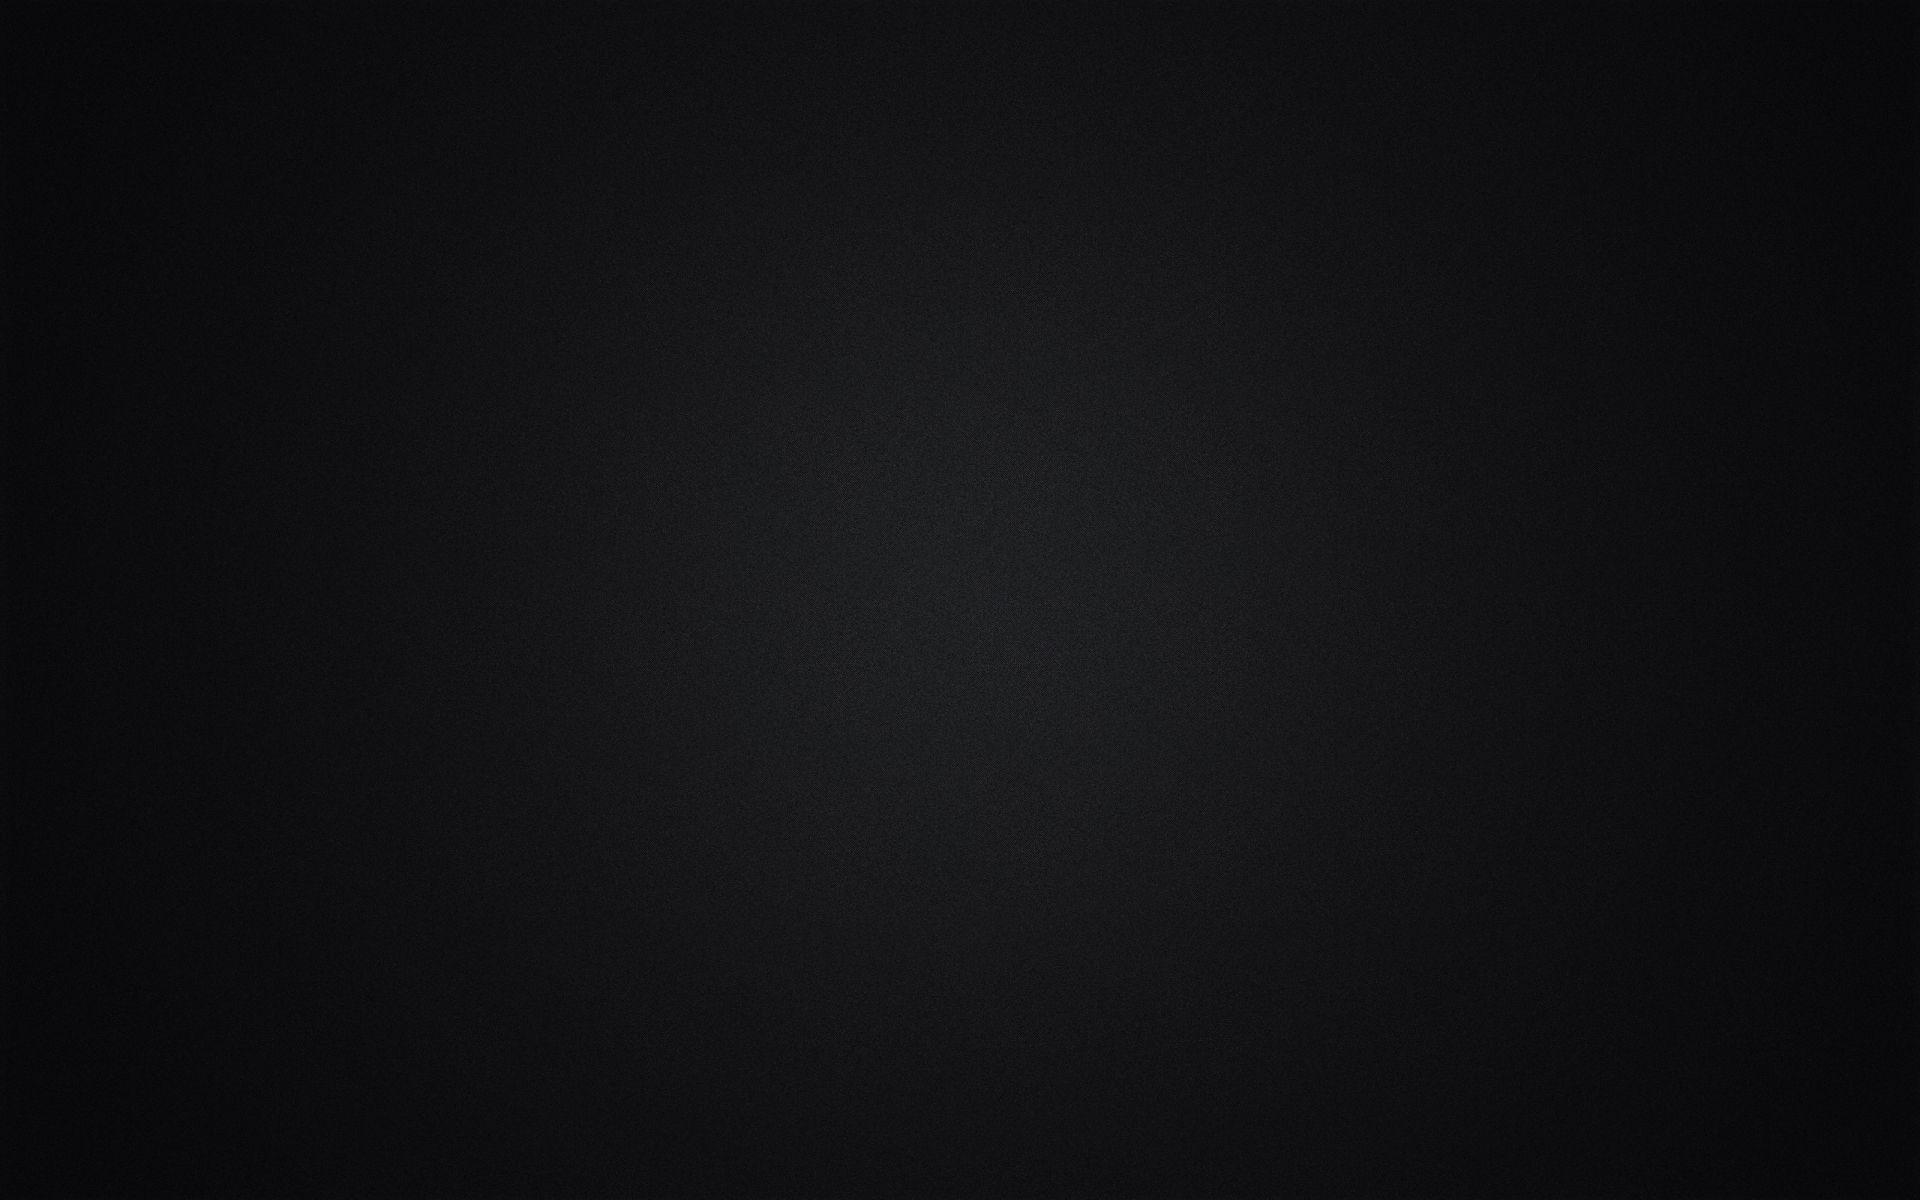 hd black screen wallpaper hd wallpaperblack textures